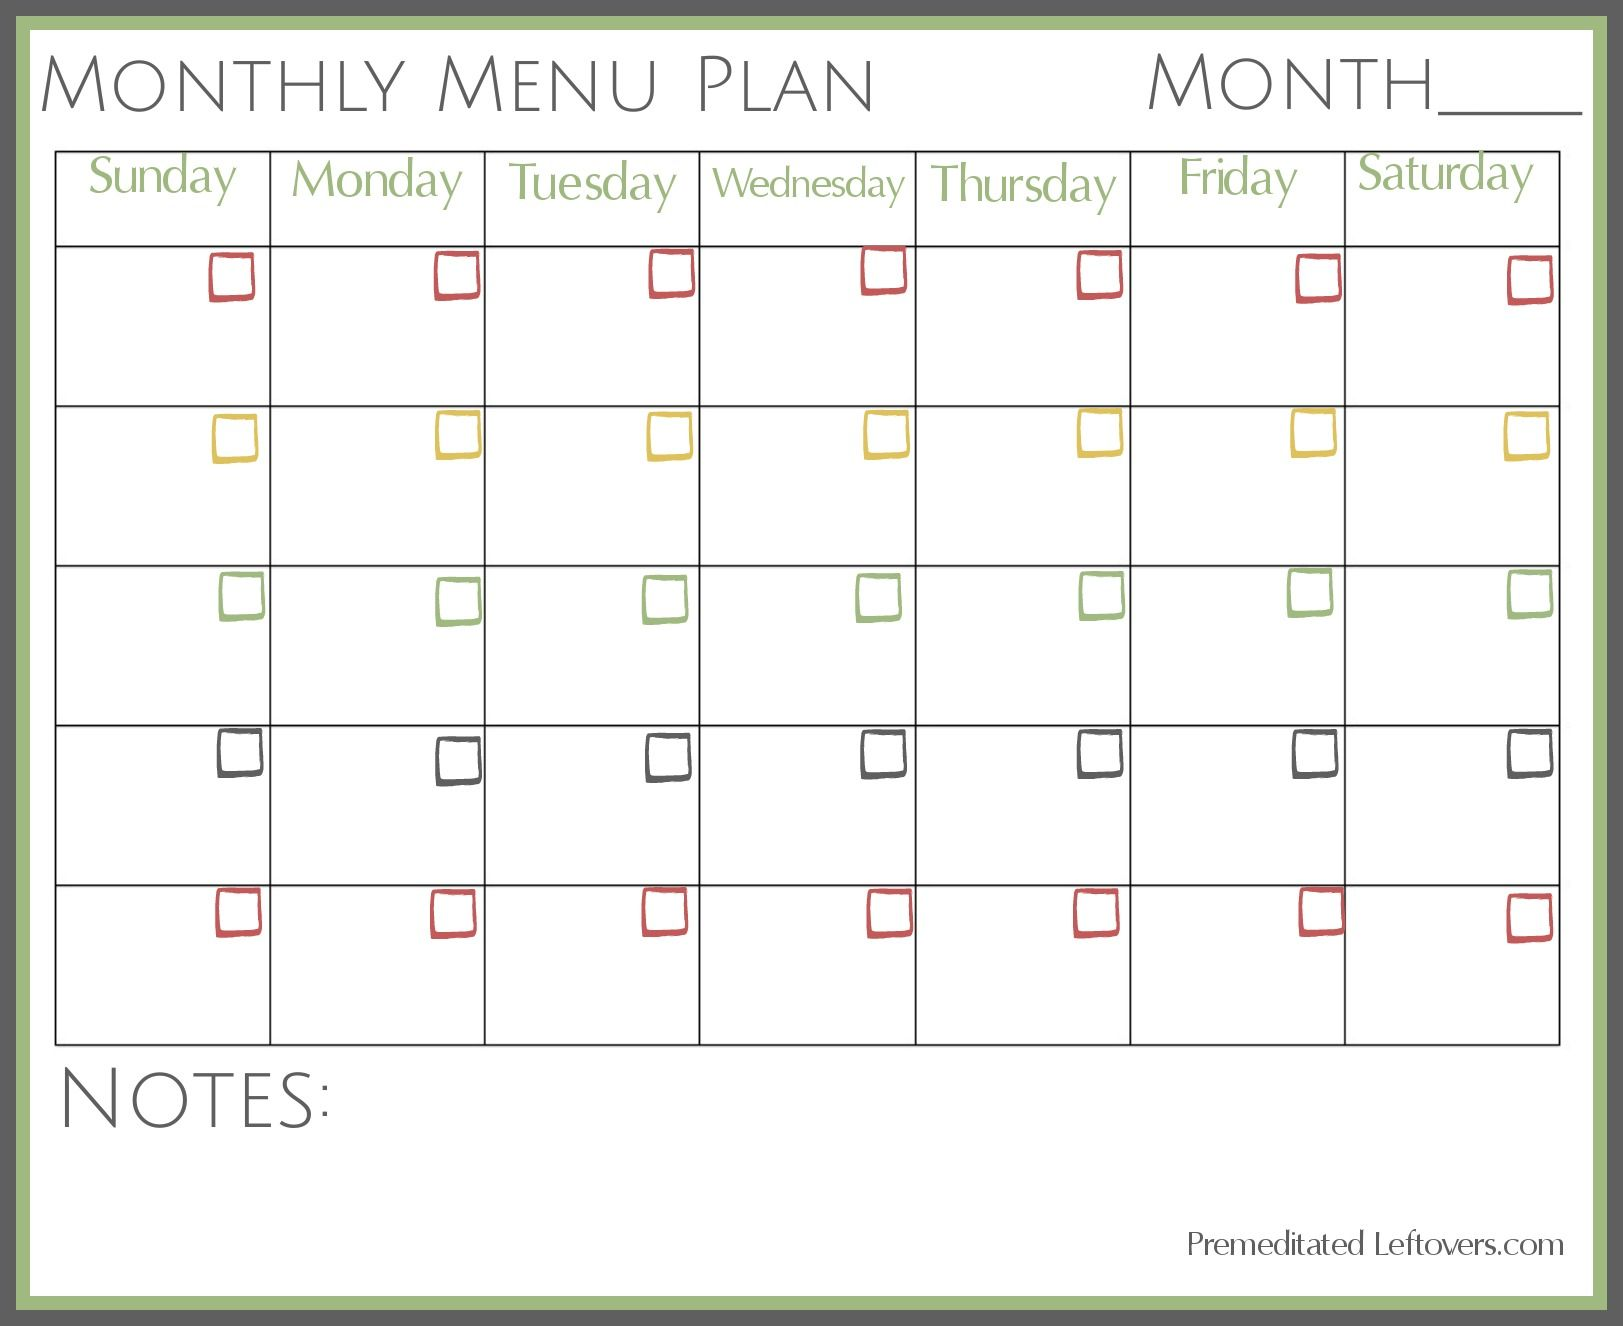 Free Printable Monthly Menu Plan Meal planner template